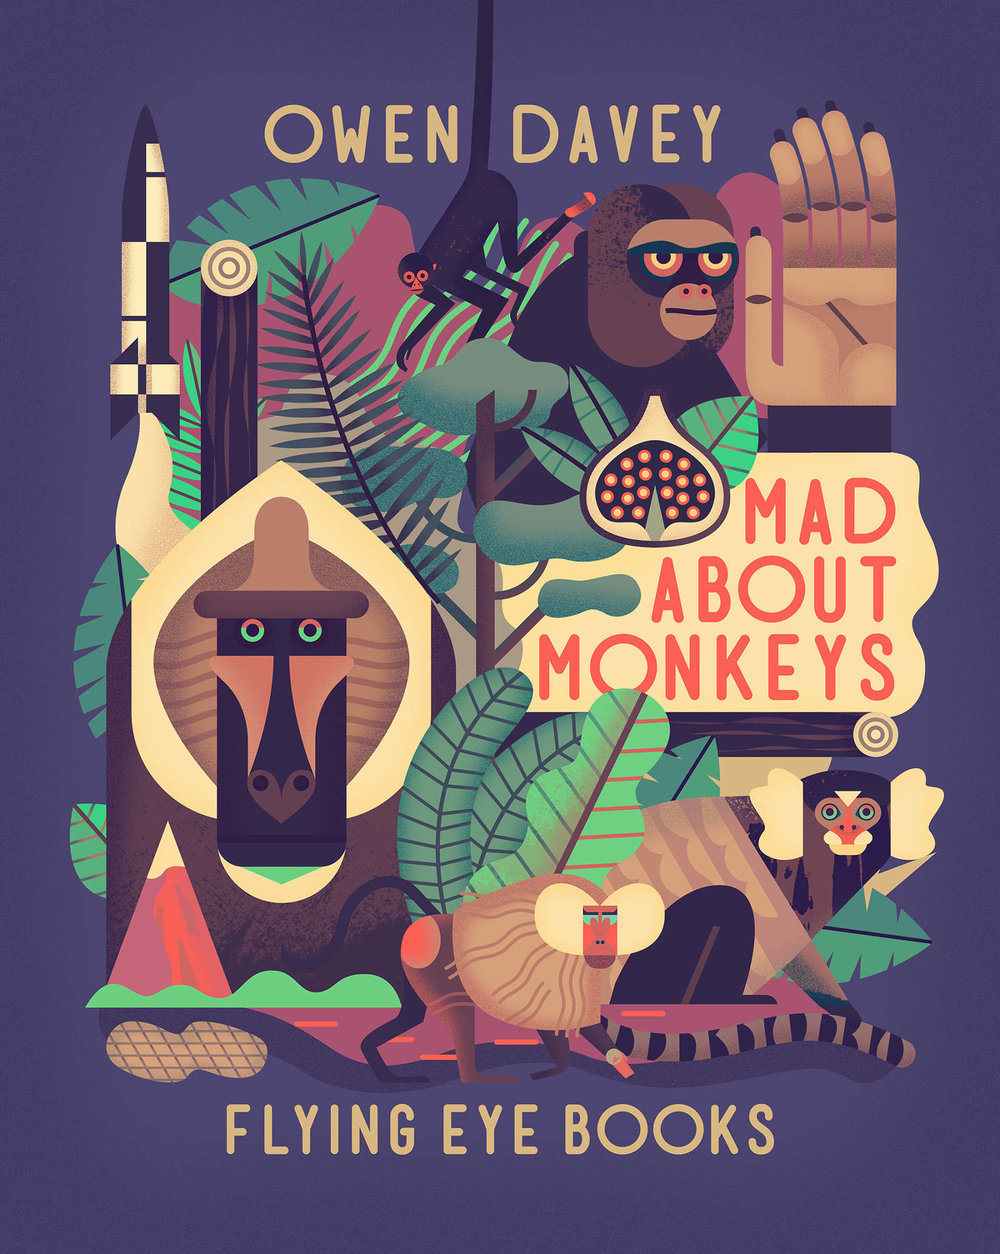 Mad-About-Monkeys-Non-Fiction-Book-Owen-Davey-Flying-Eye_1600_c.jpg